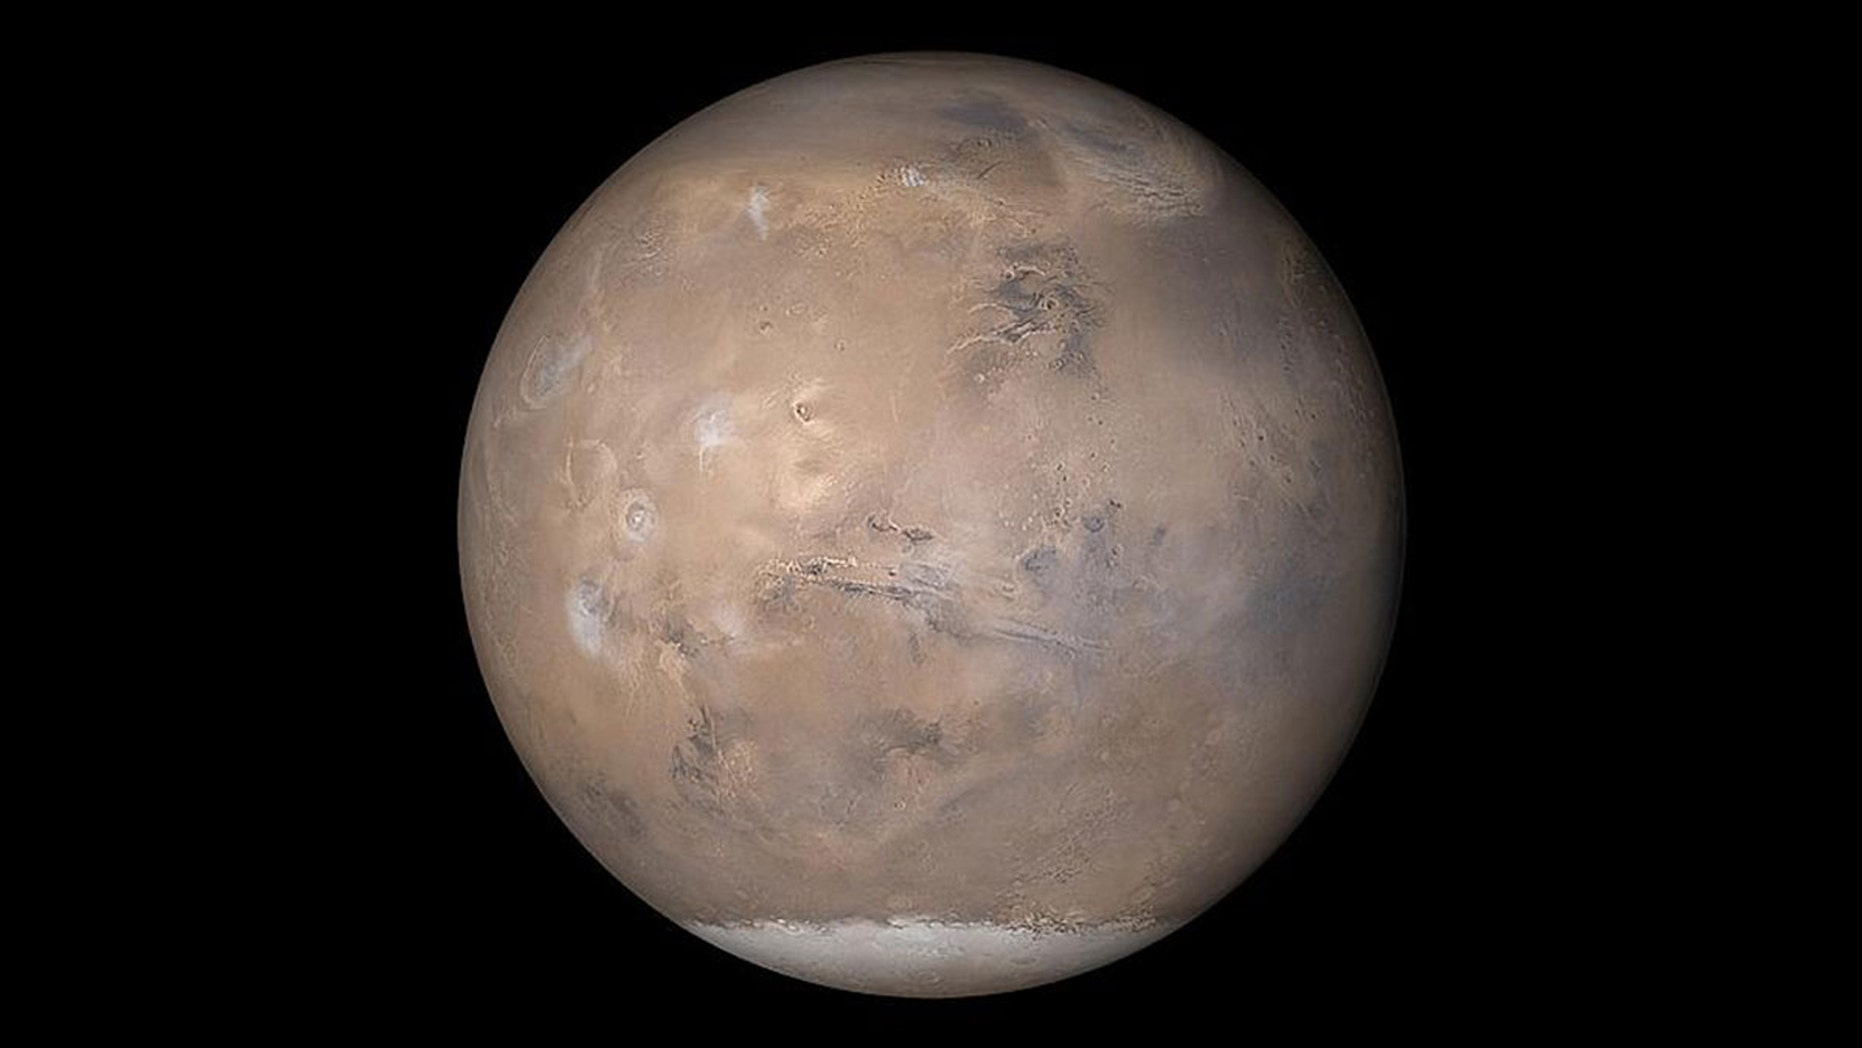 NASA announces Mars 2020 rover landing site